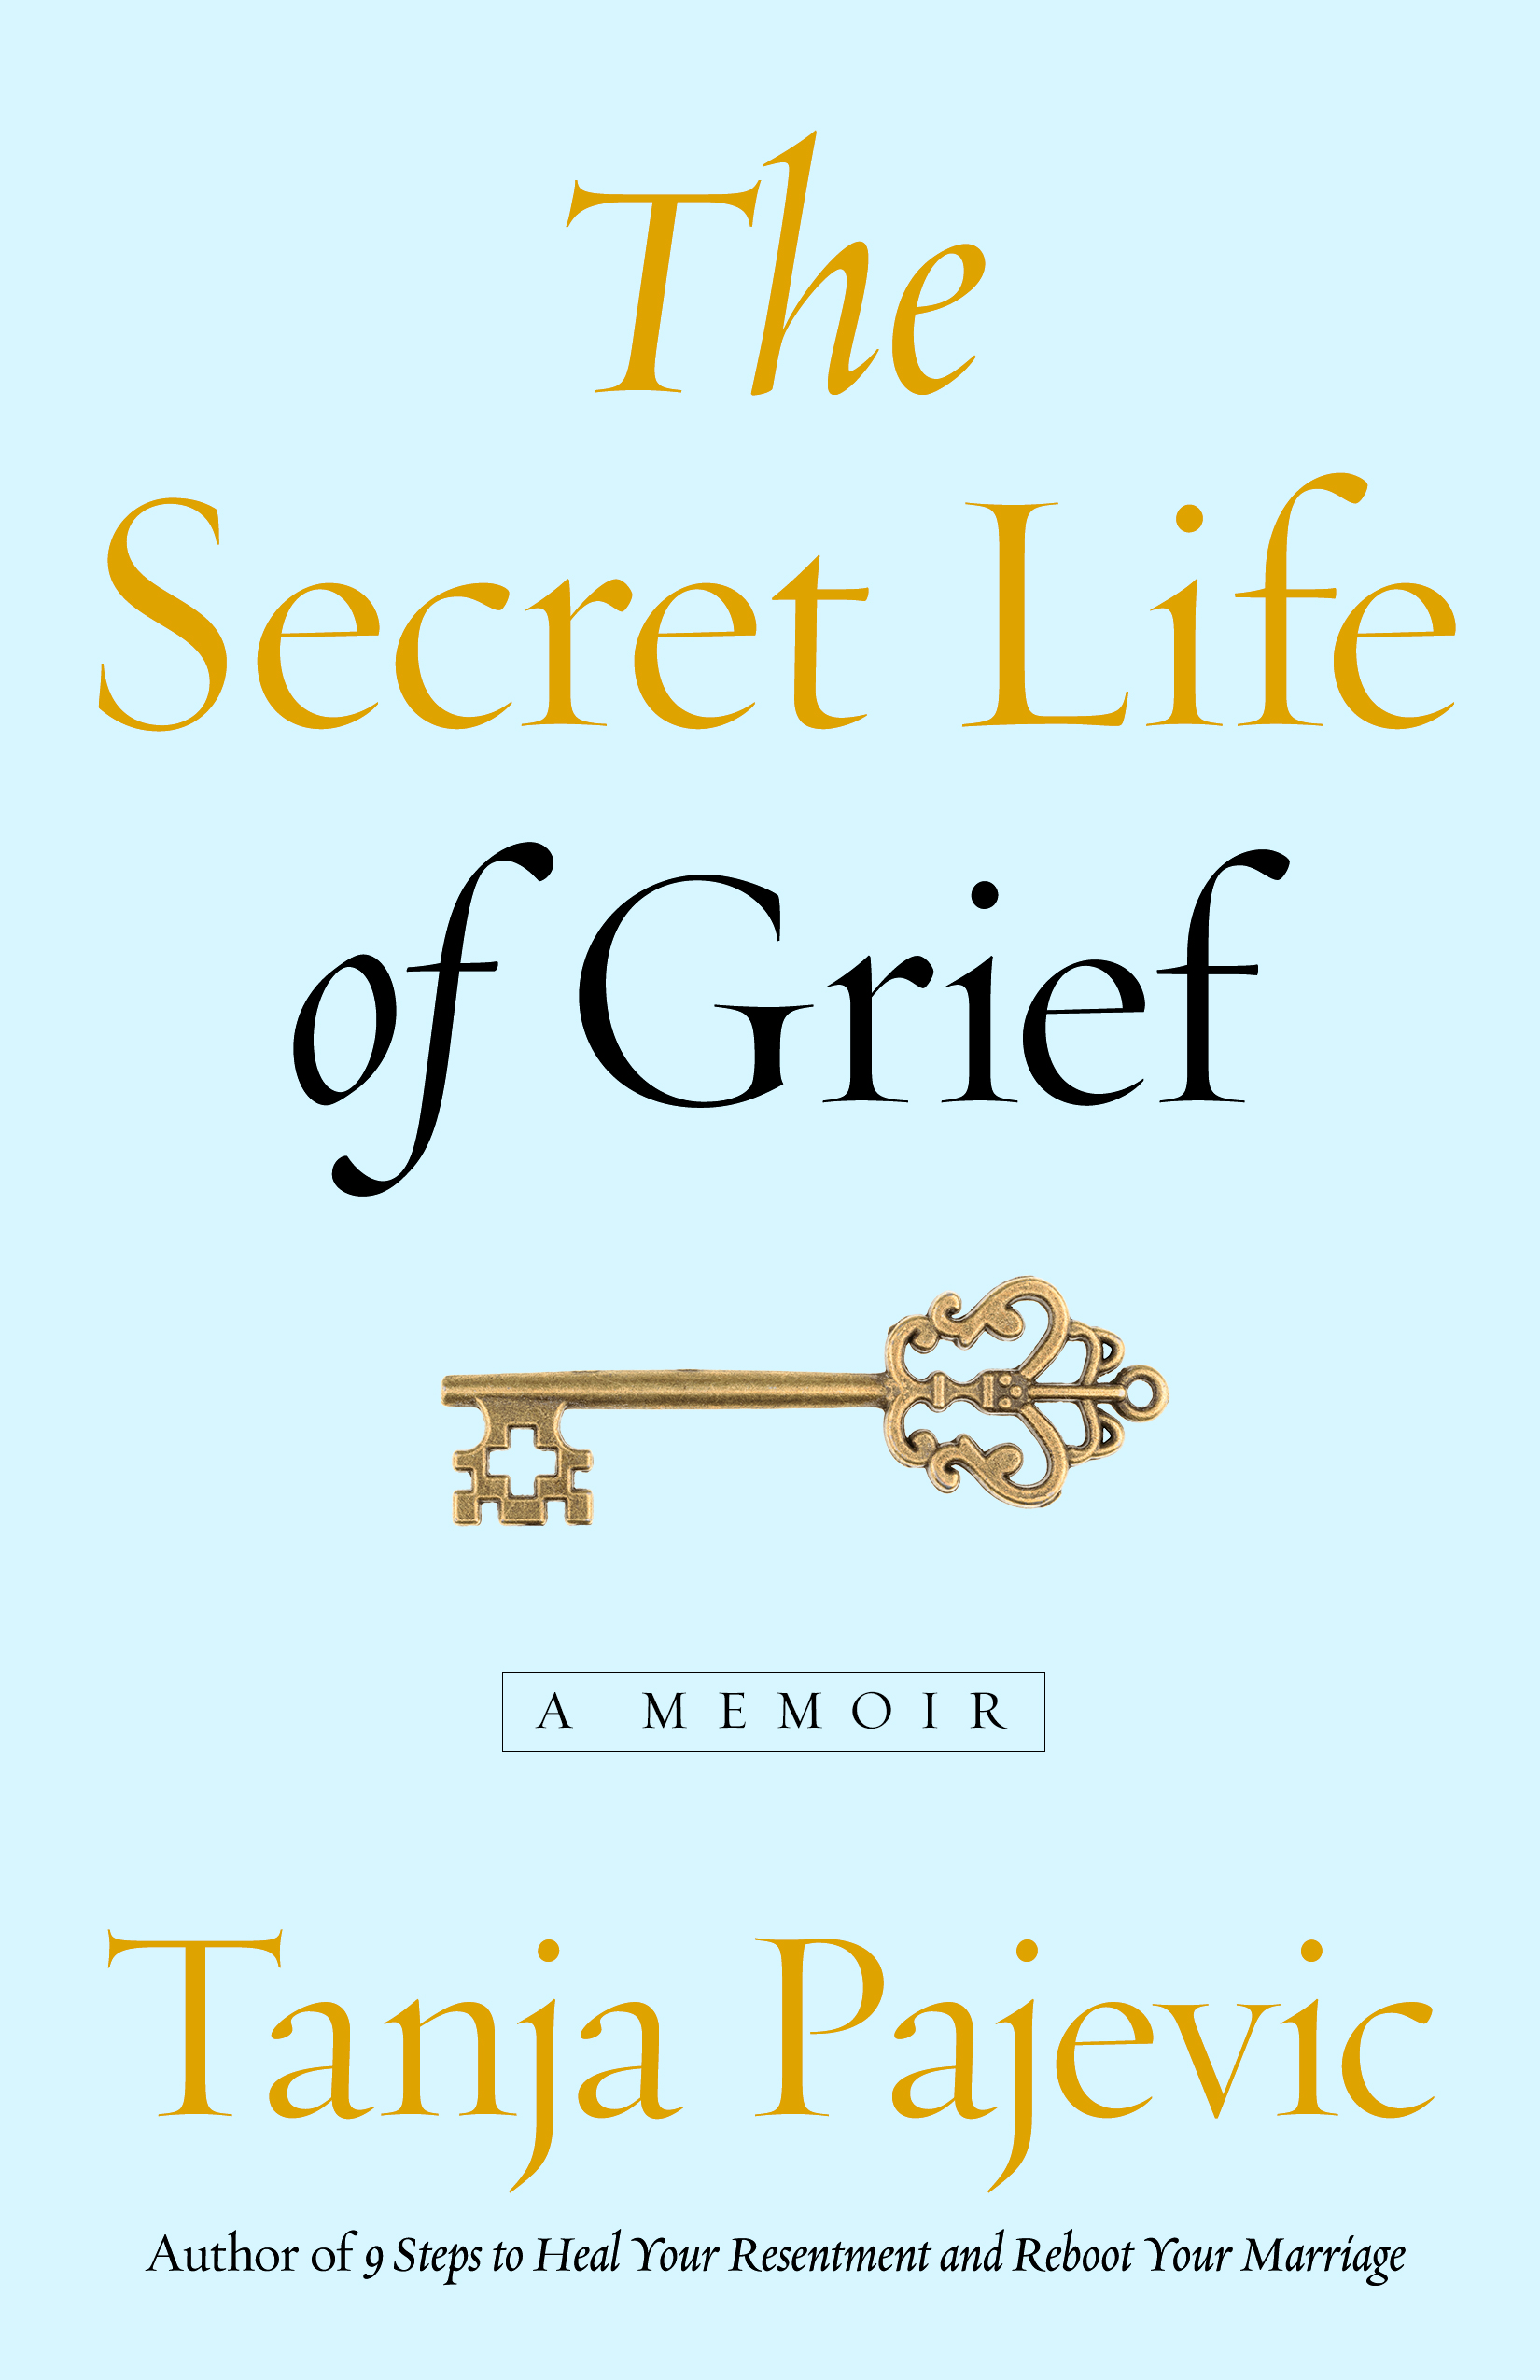 THE SECRET LIFE OF GRIEF